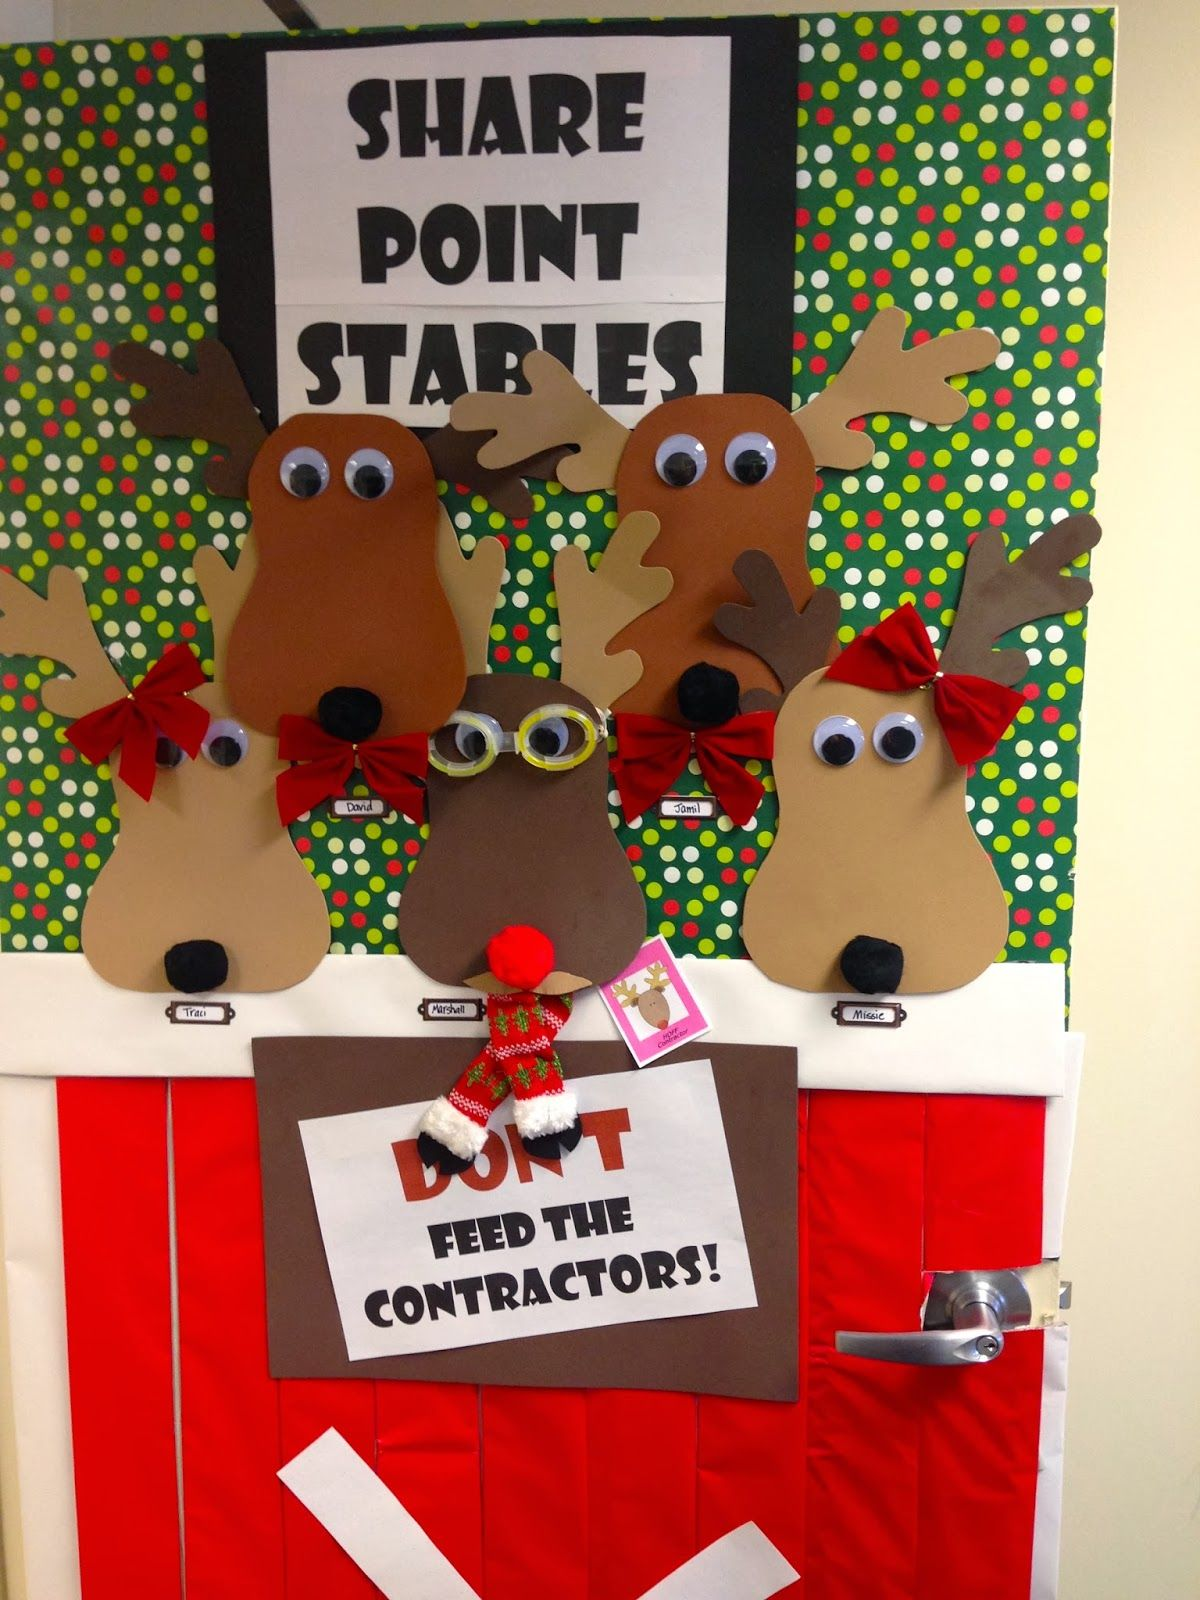 Office cubicle christmas decorating contest ideas - Christmas In July Office Decorations Yahoo Image Search Results